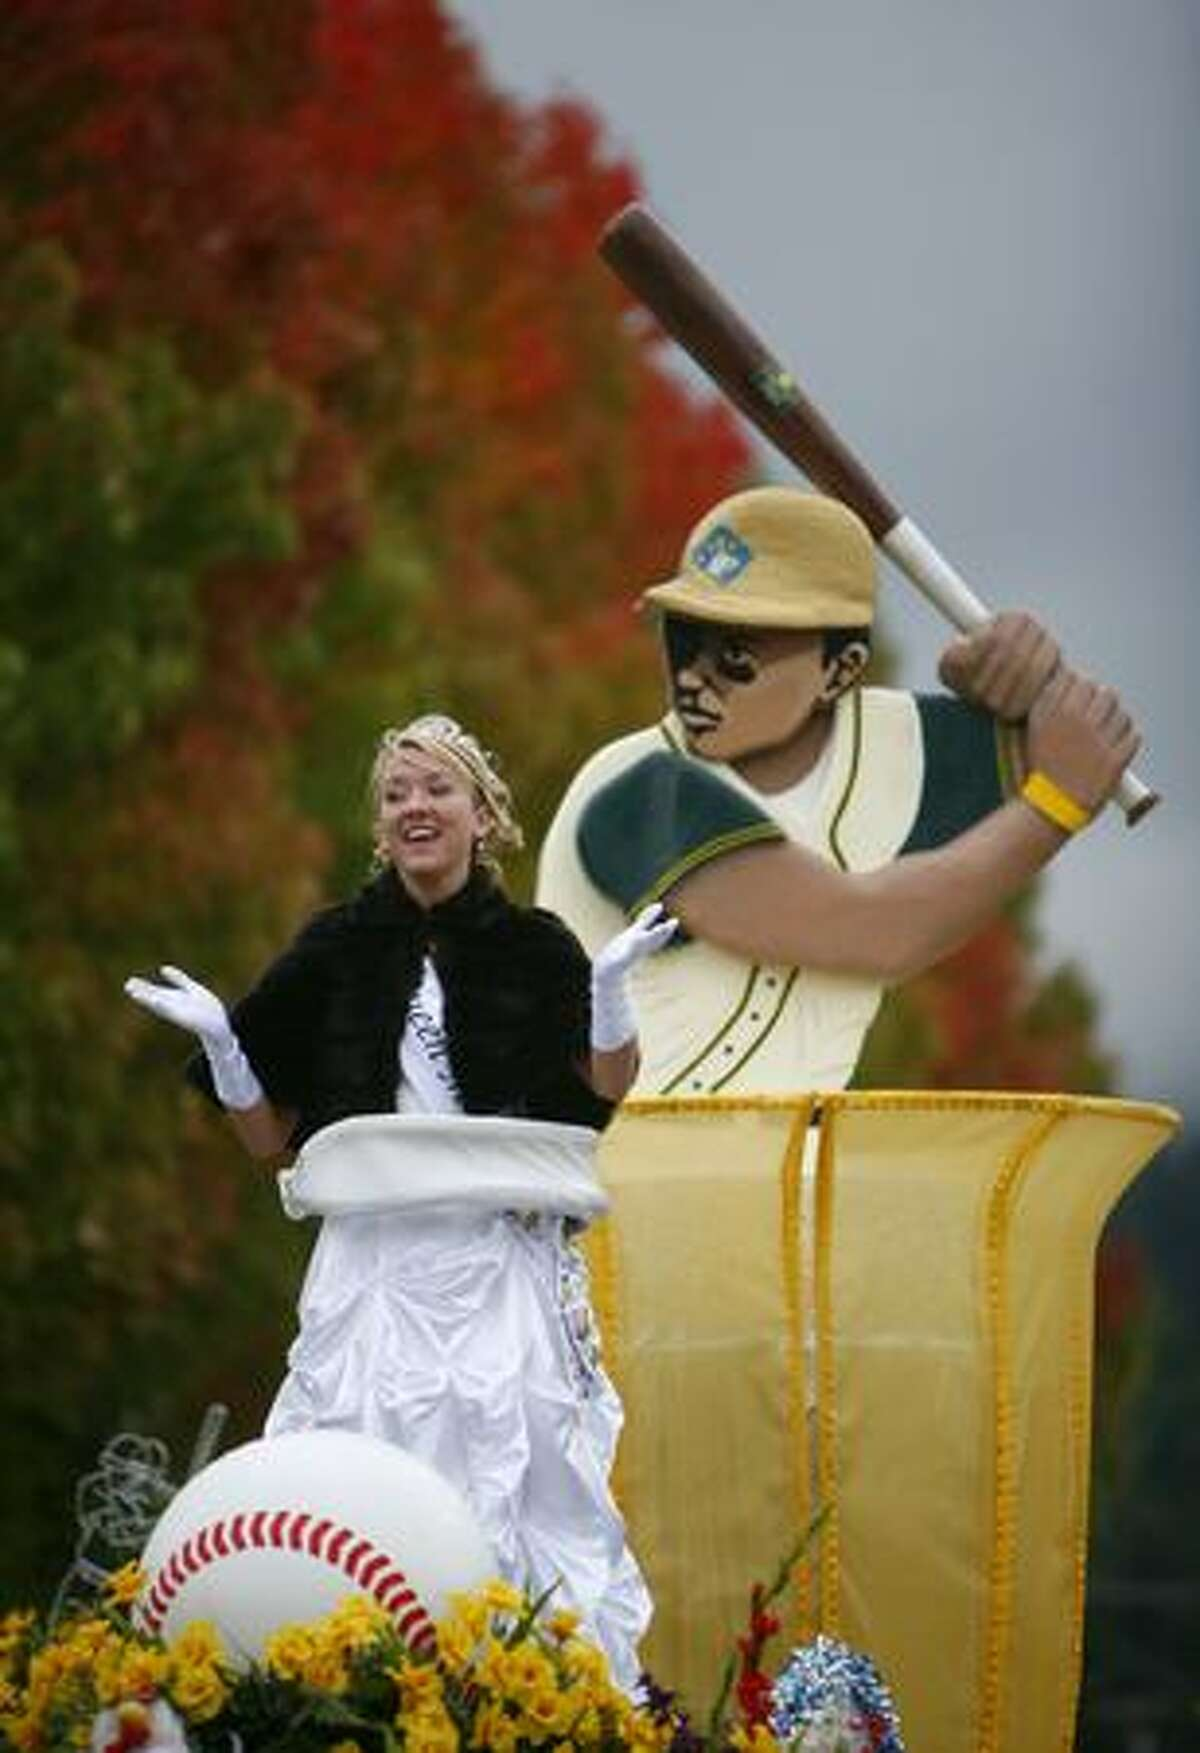 Members of the Daffodil Festival royalty ride in the Issaquah Salmon Days Festival parade.